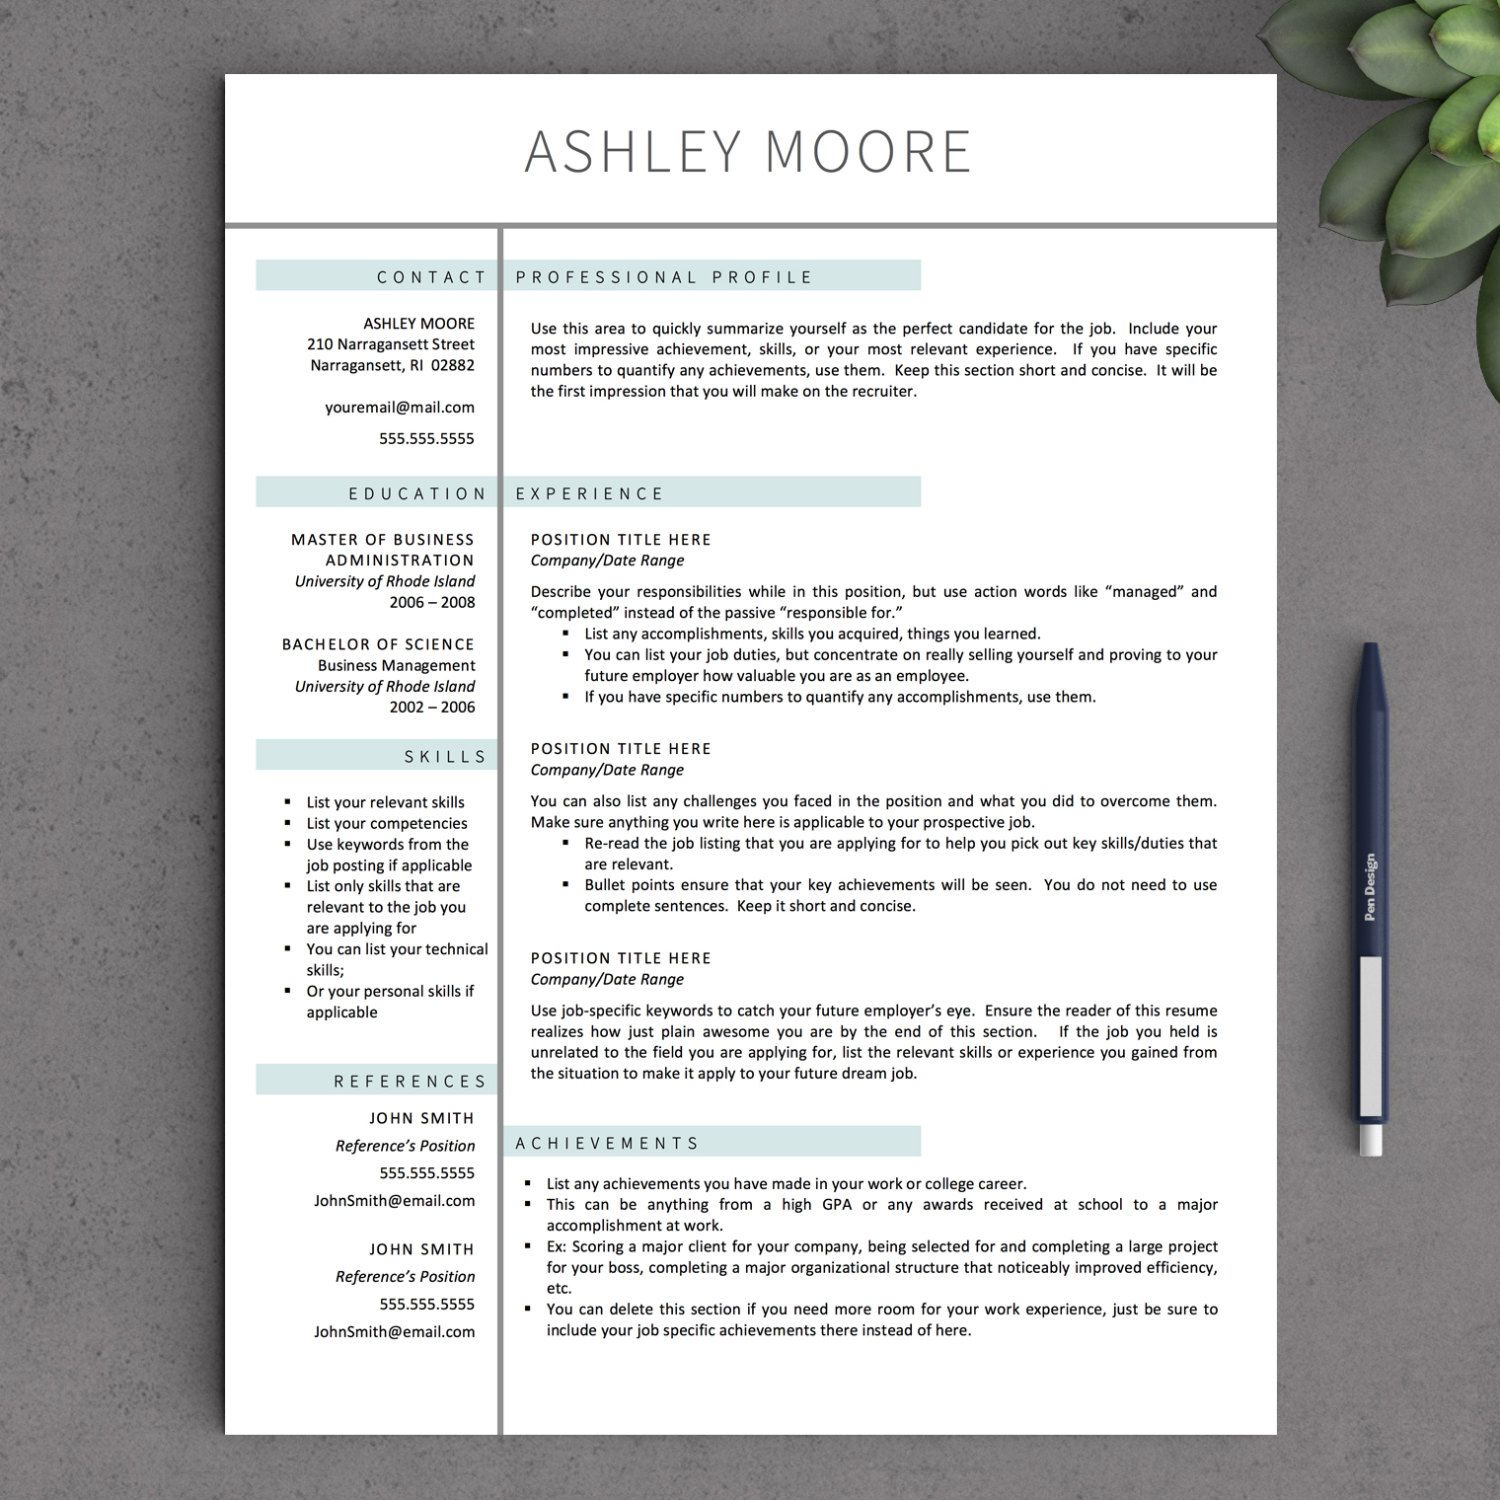 Apple Pages Resume Template Download Apple Pages Resume Template Download,  Appleu2026